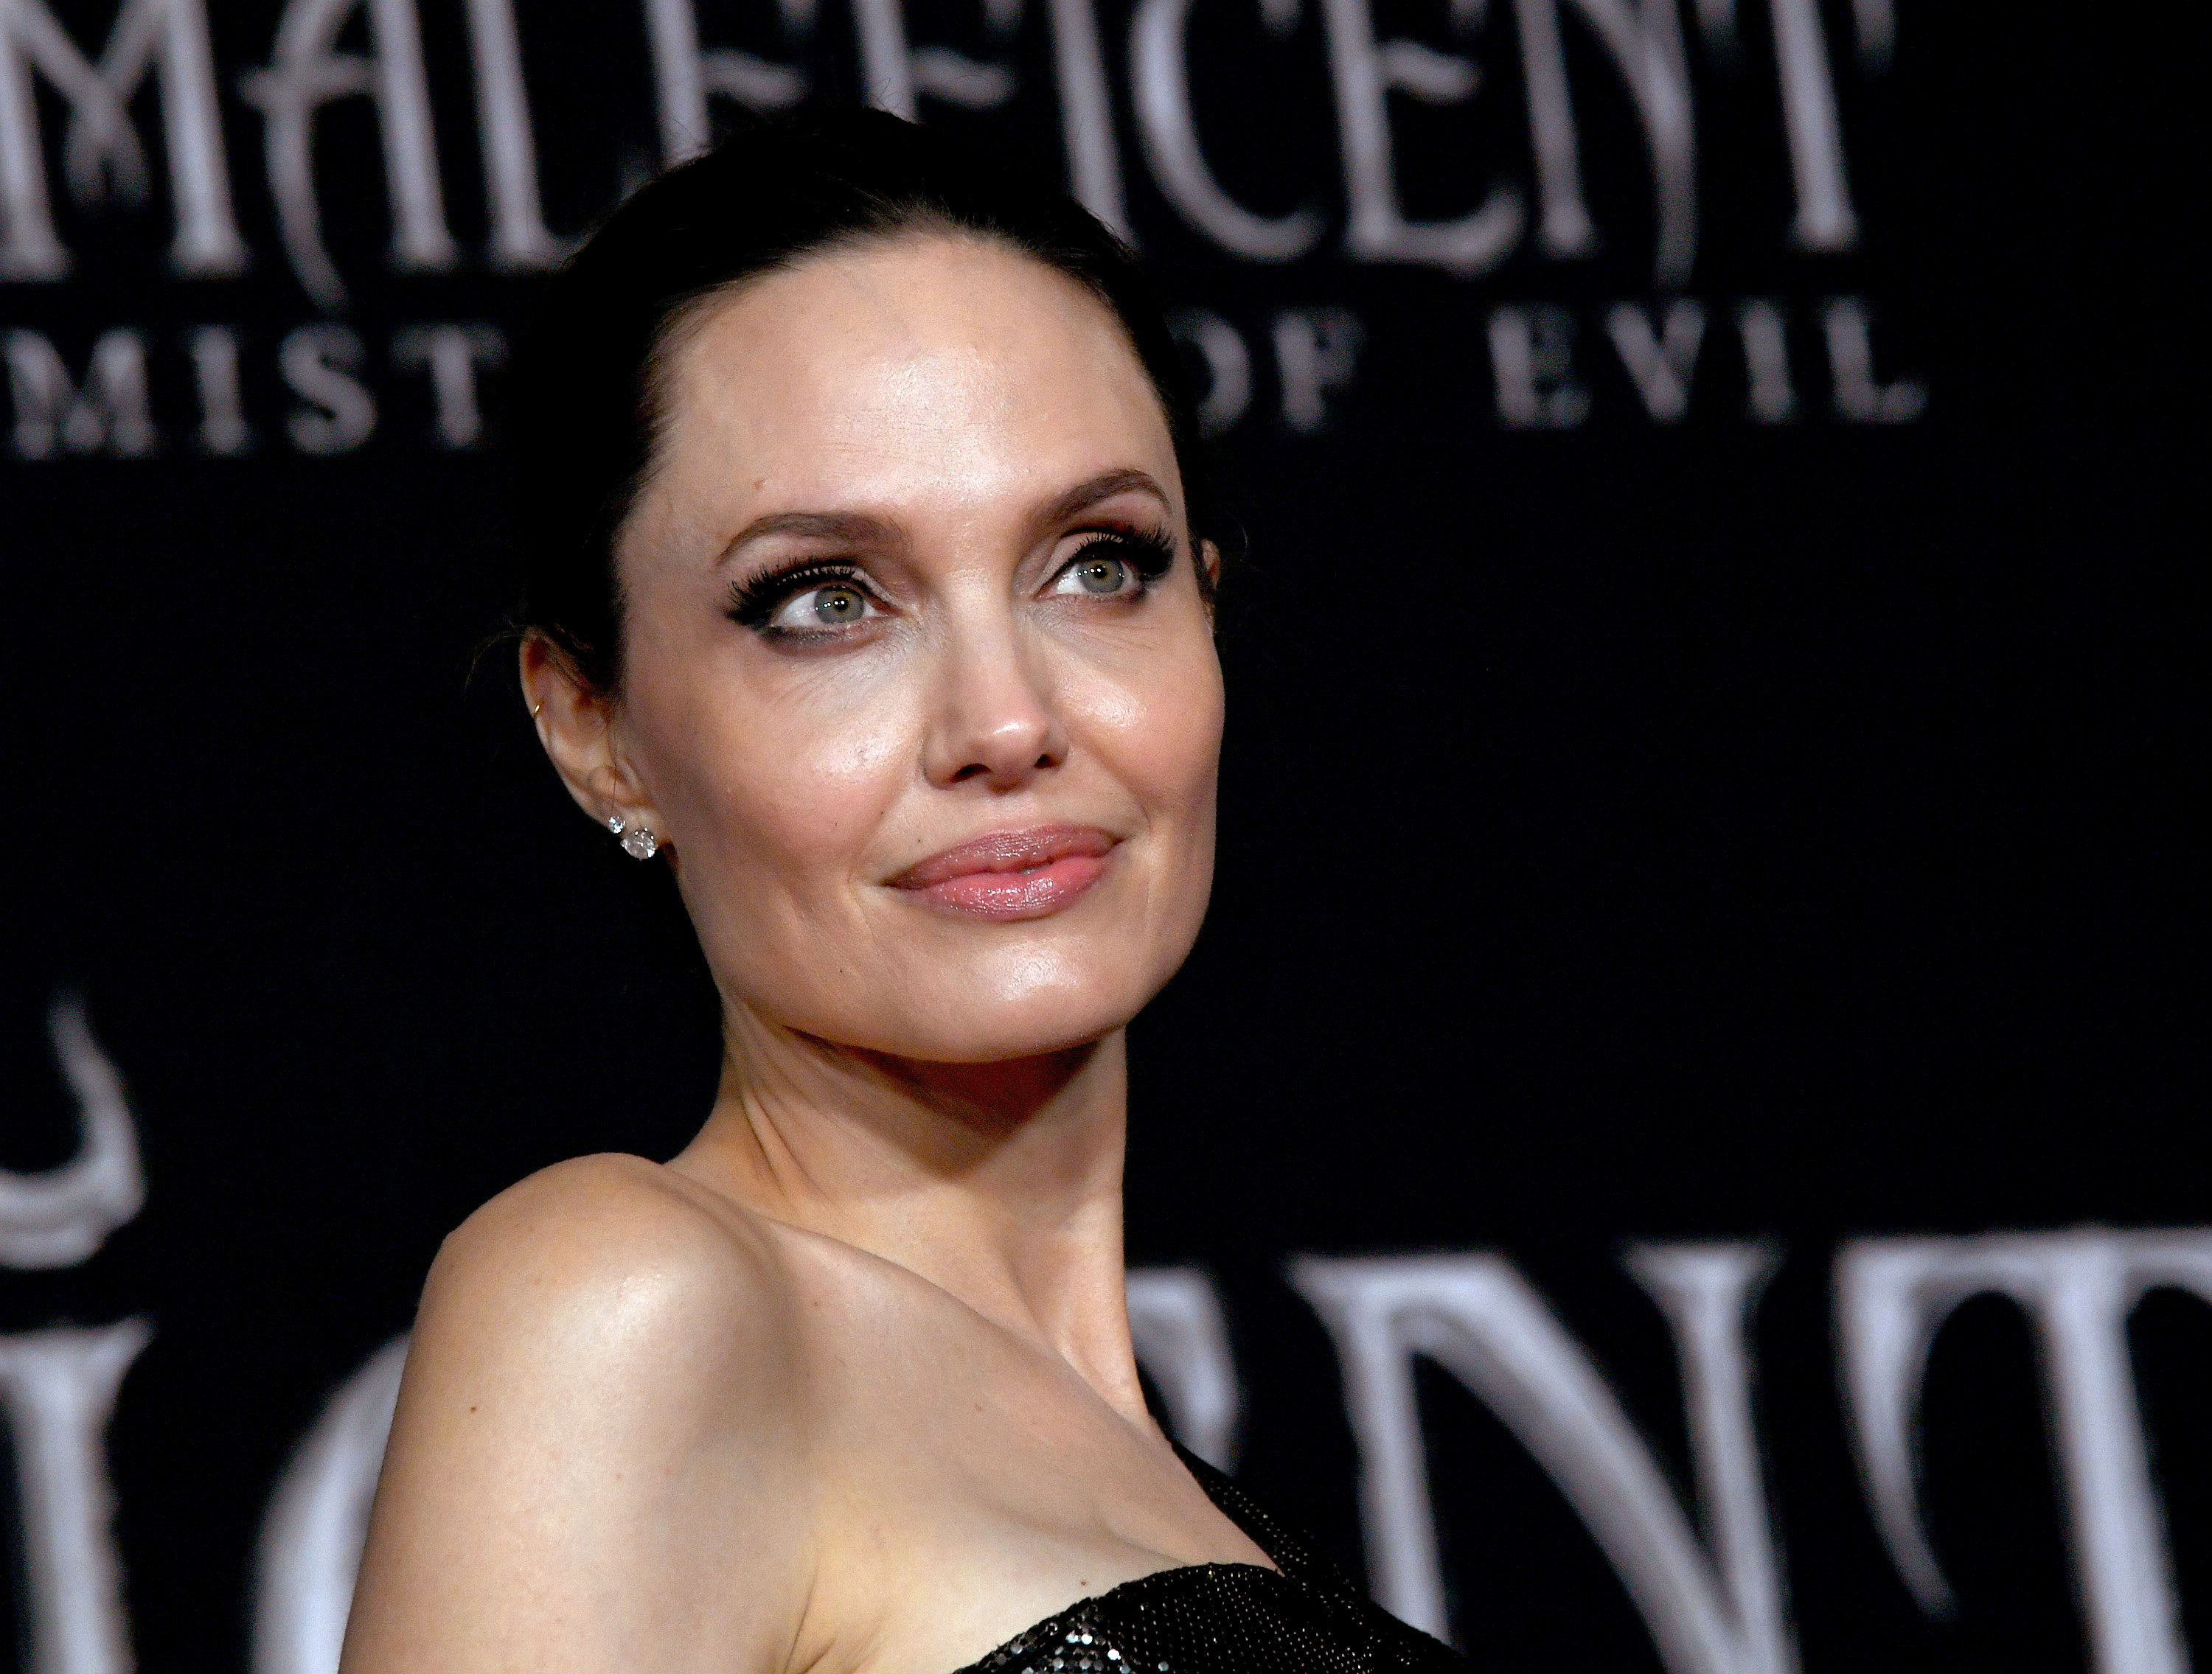 """Angelina Jolie arrives at the premiere of Disney's """"Maleficent: Mistress Of Evil"""" at the El Capitan Theatre on September 30, 2019 in Los Angeles, California"""